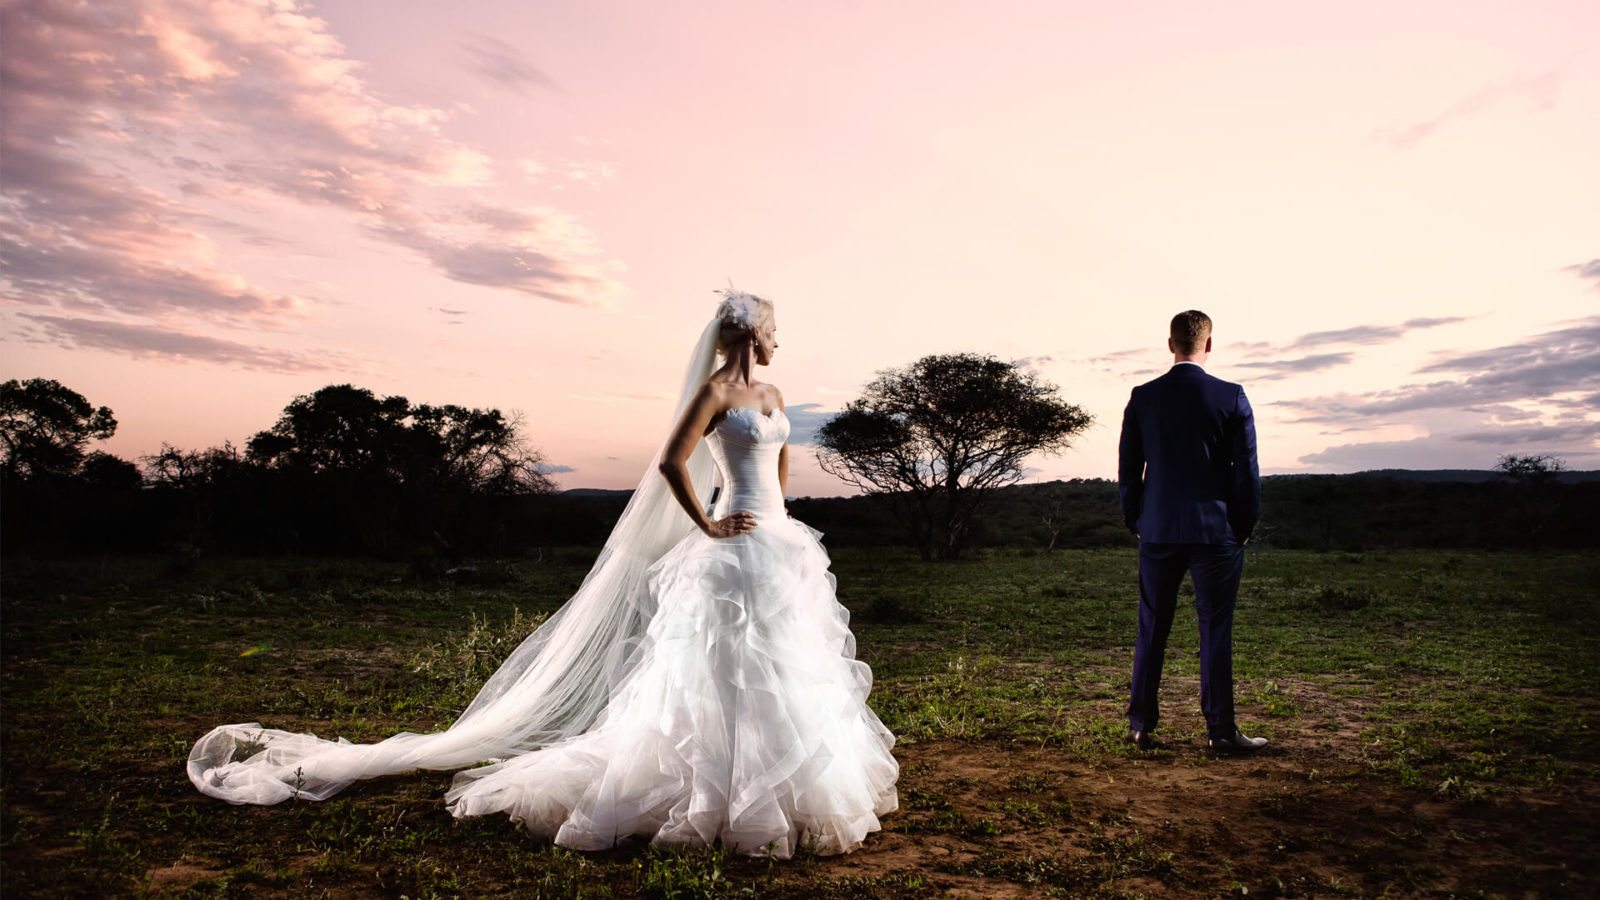 1O THINGS TO TELL YOUR HUSBAND BEFORE THE WEDDING